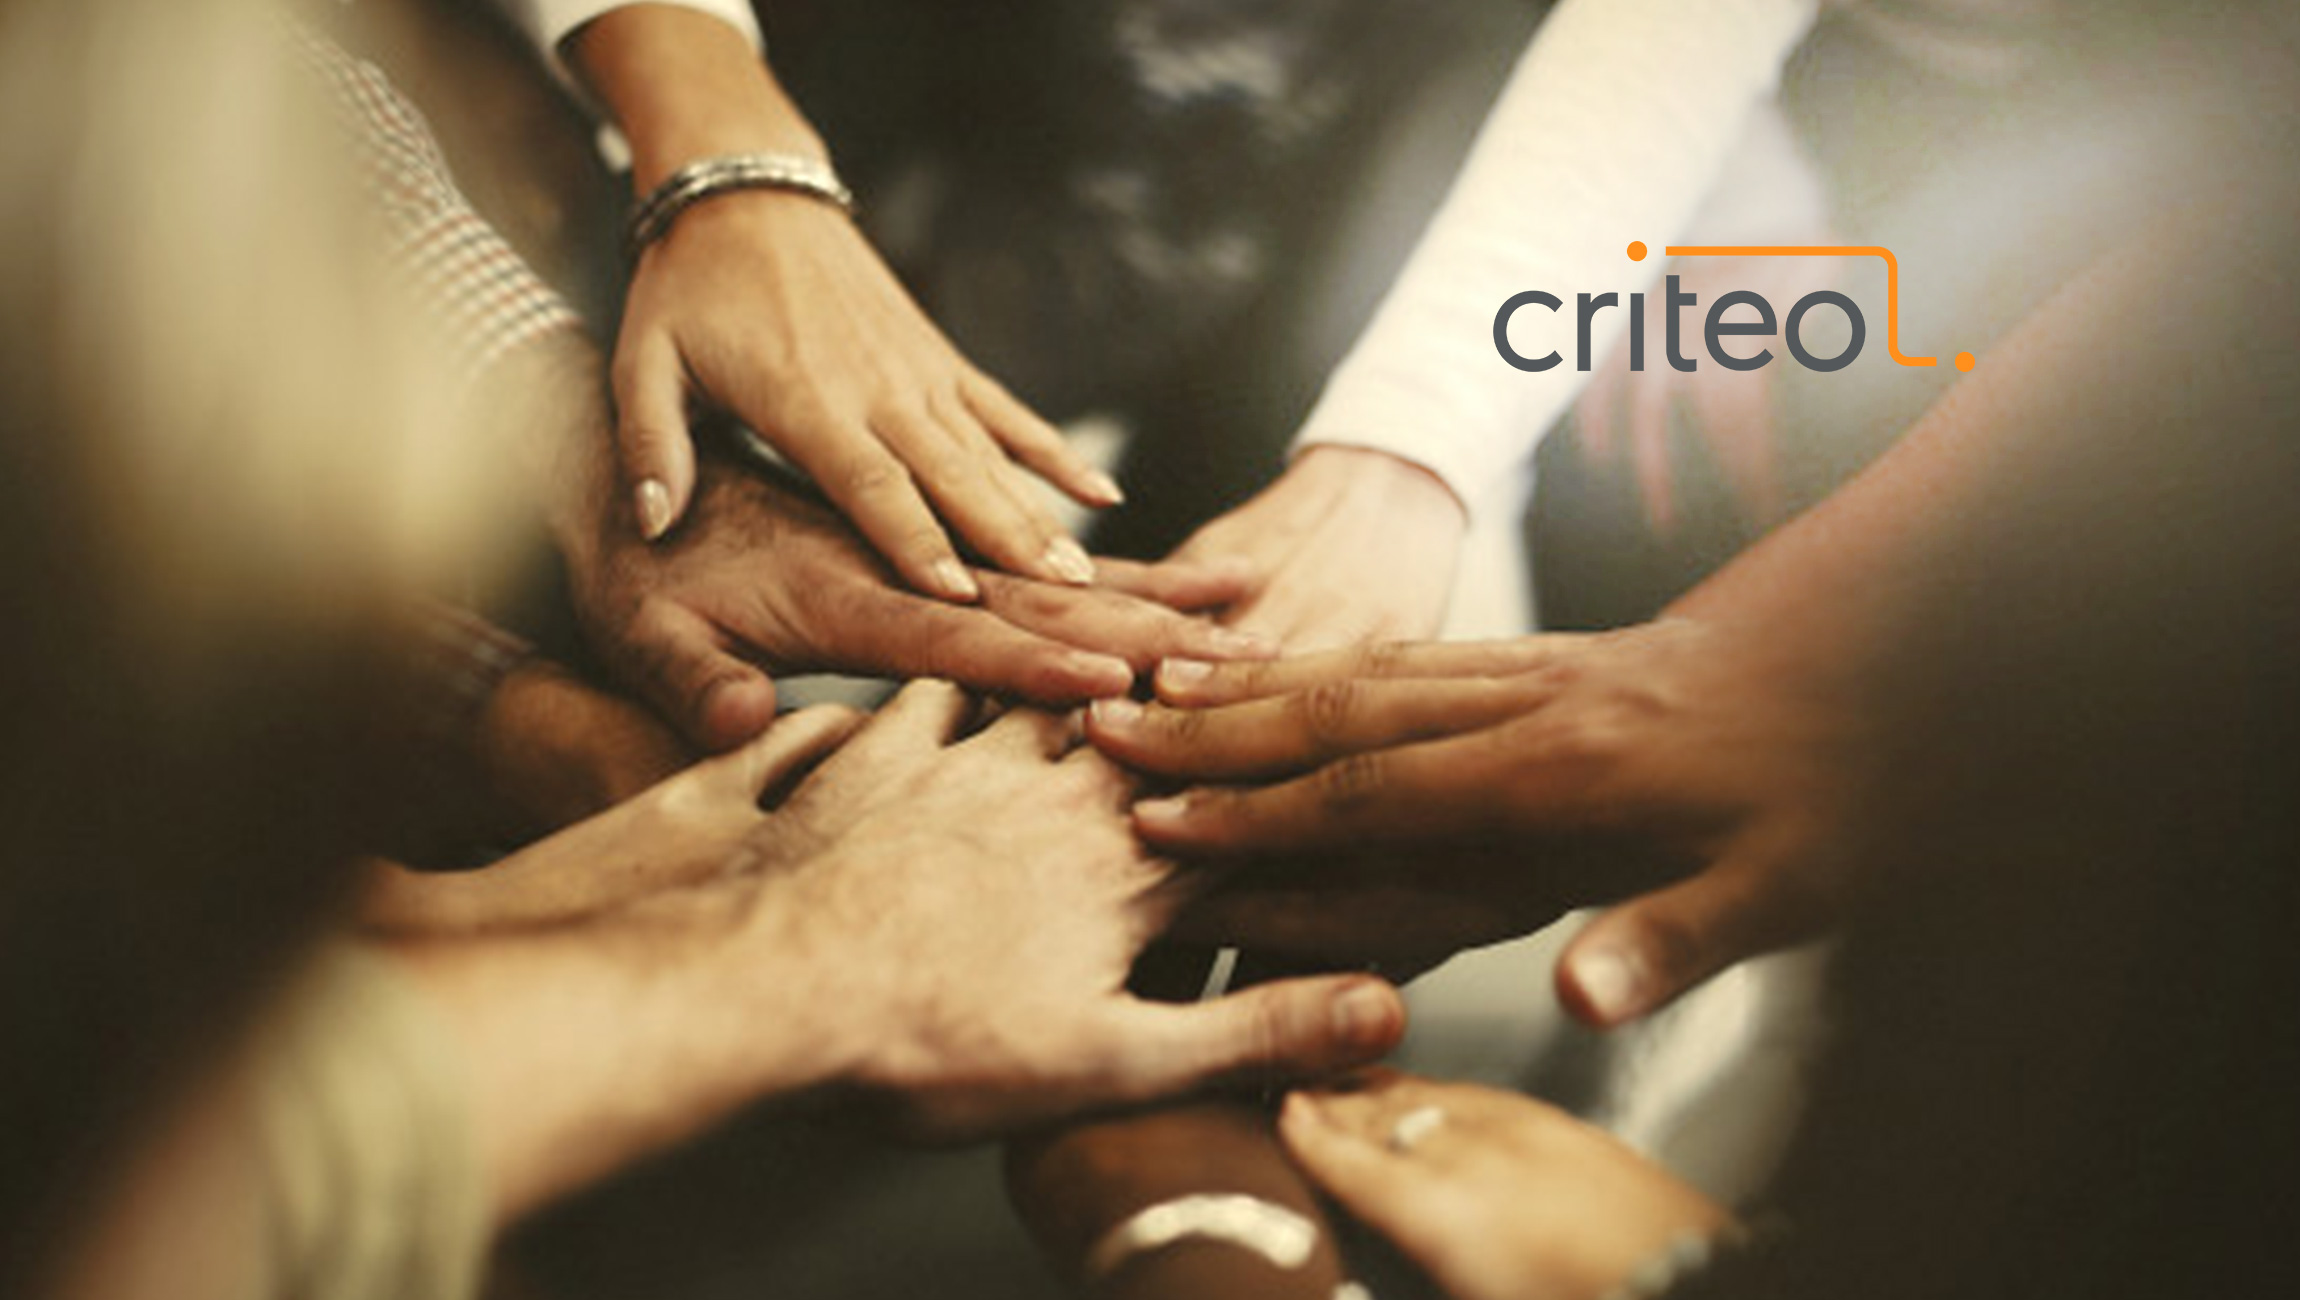 Criteo Takes Steps to Improve Advertiser ROI; Achieves Multiple Trustworthy Accountability Group (TAG) Certifications